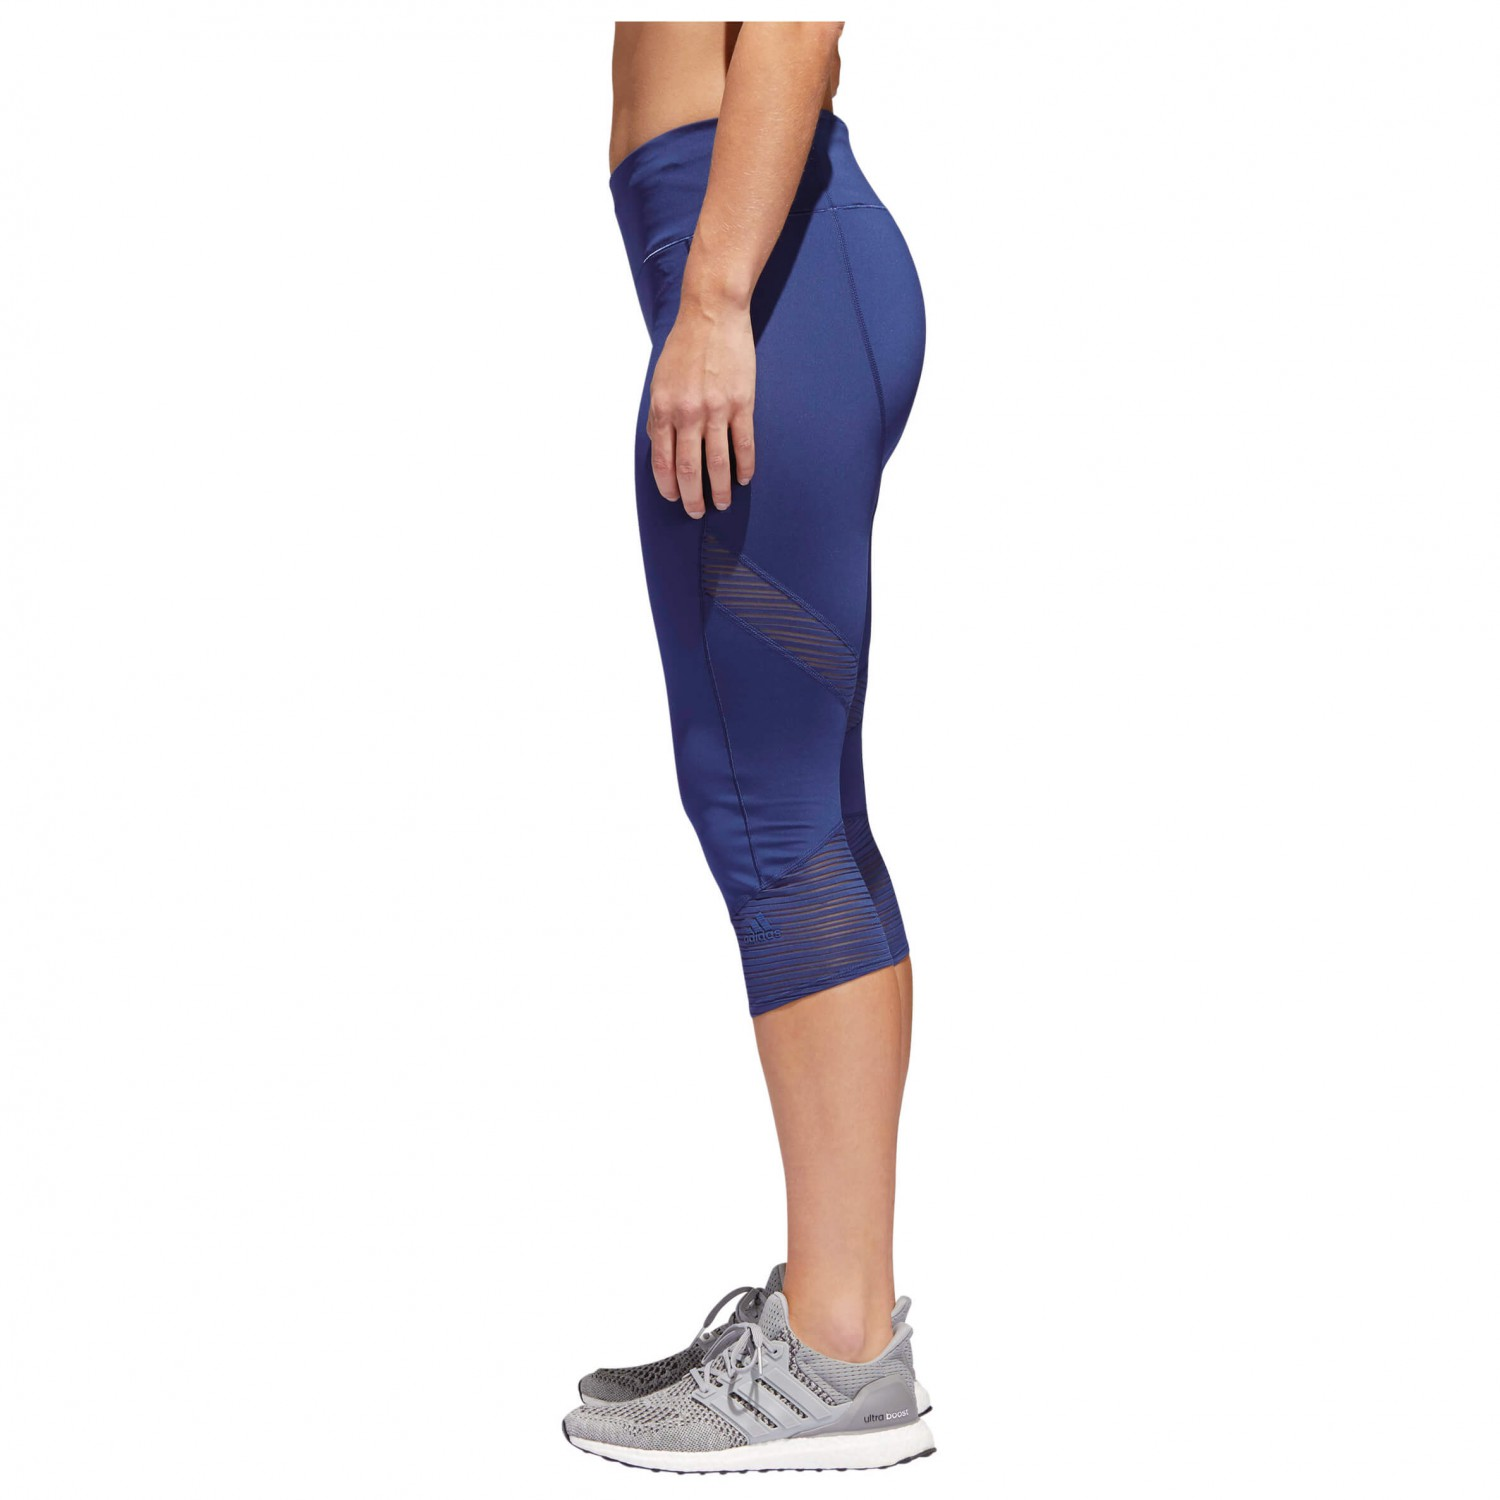 bd88e7472c5 Adidas How We Do 3/4 Tight - Running Tights Women's | Buy online ...